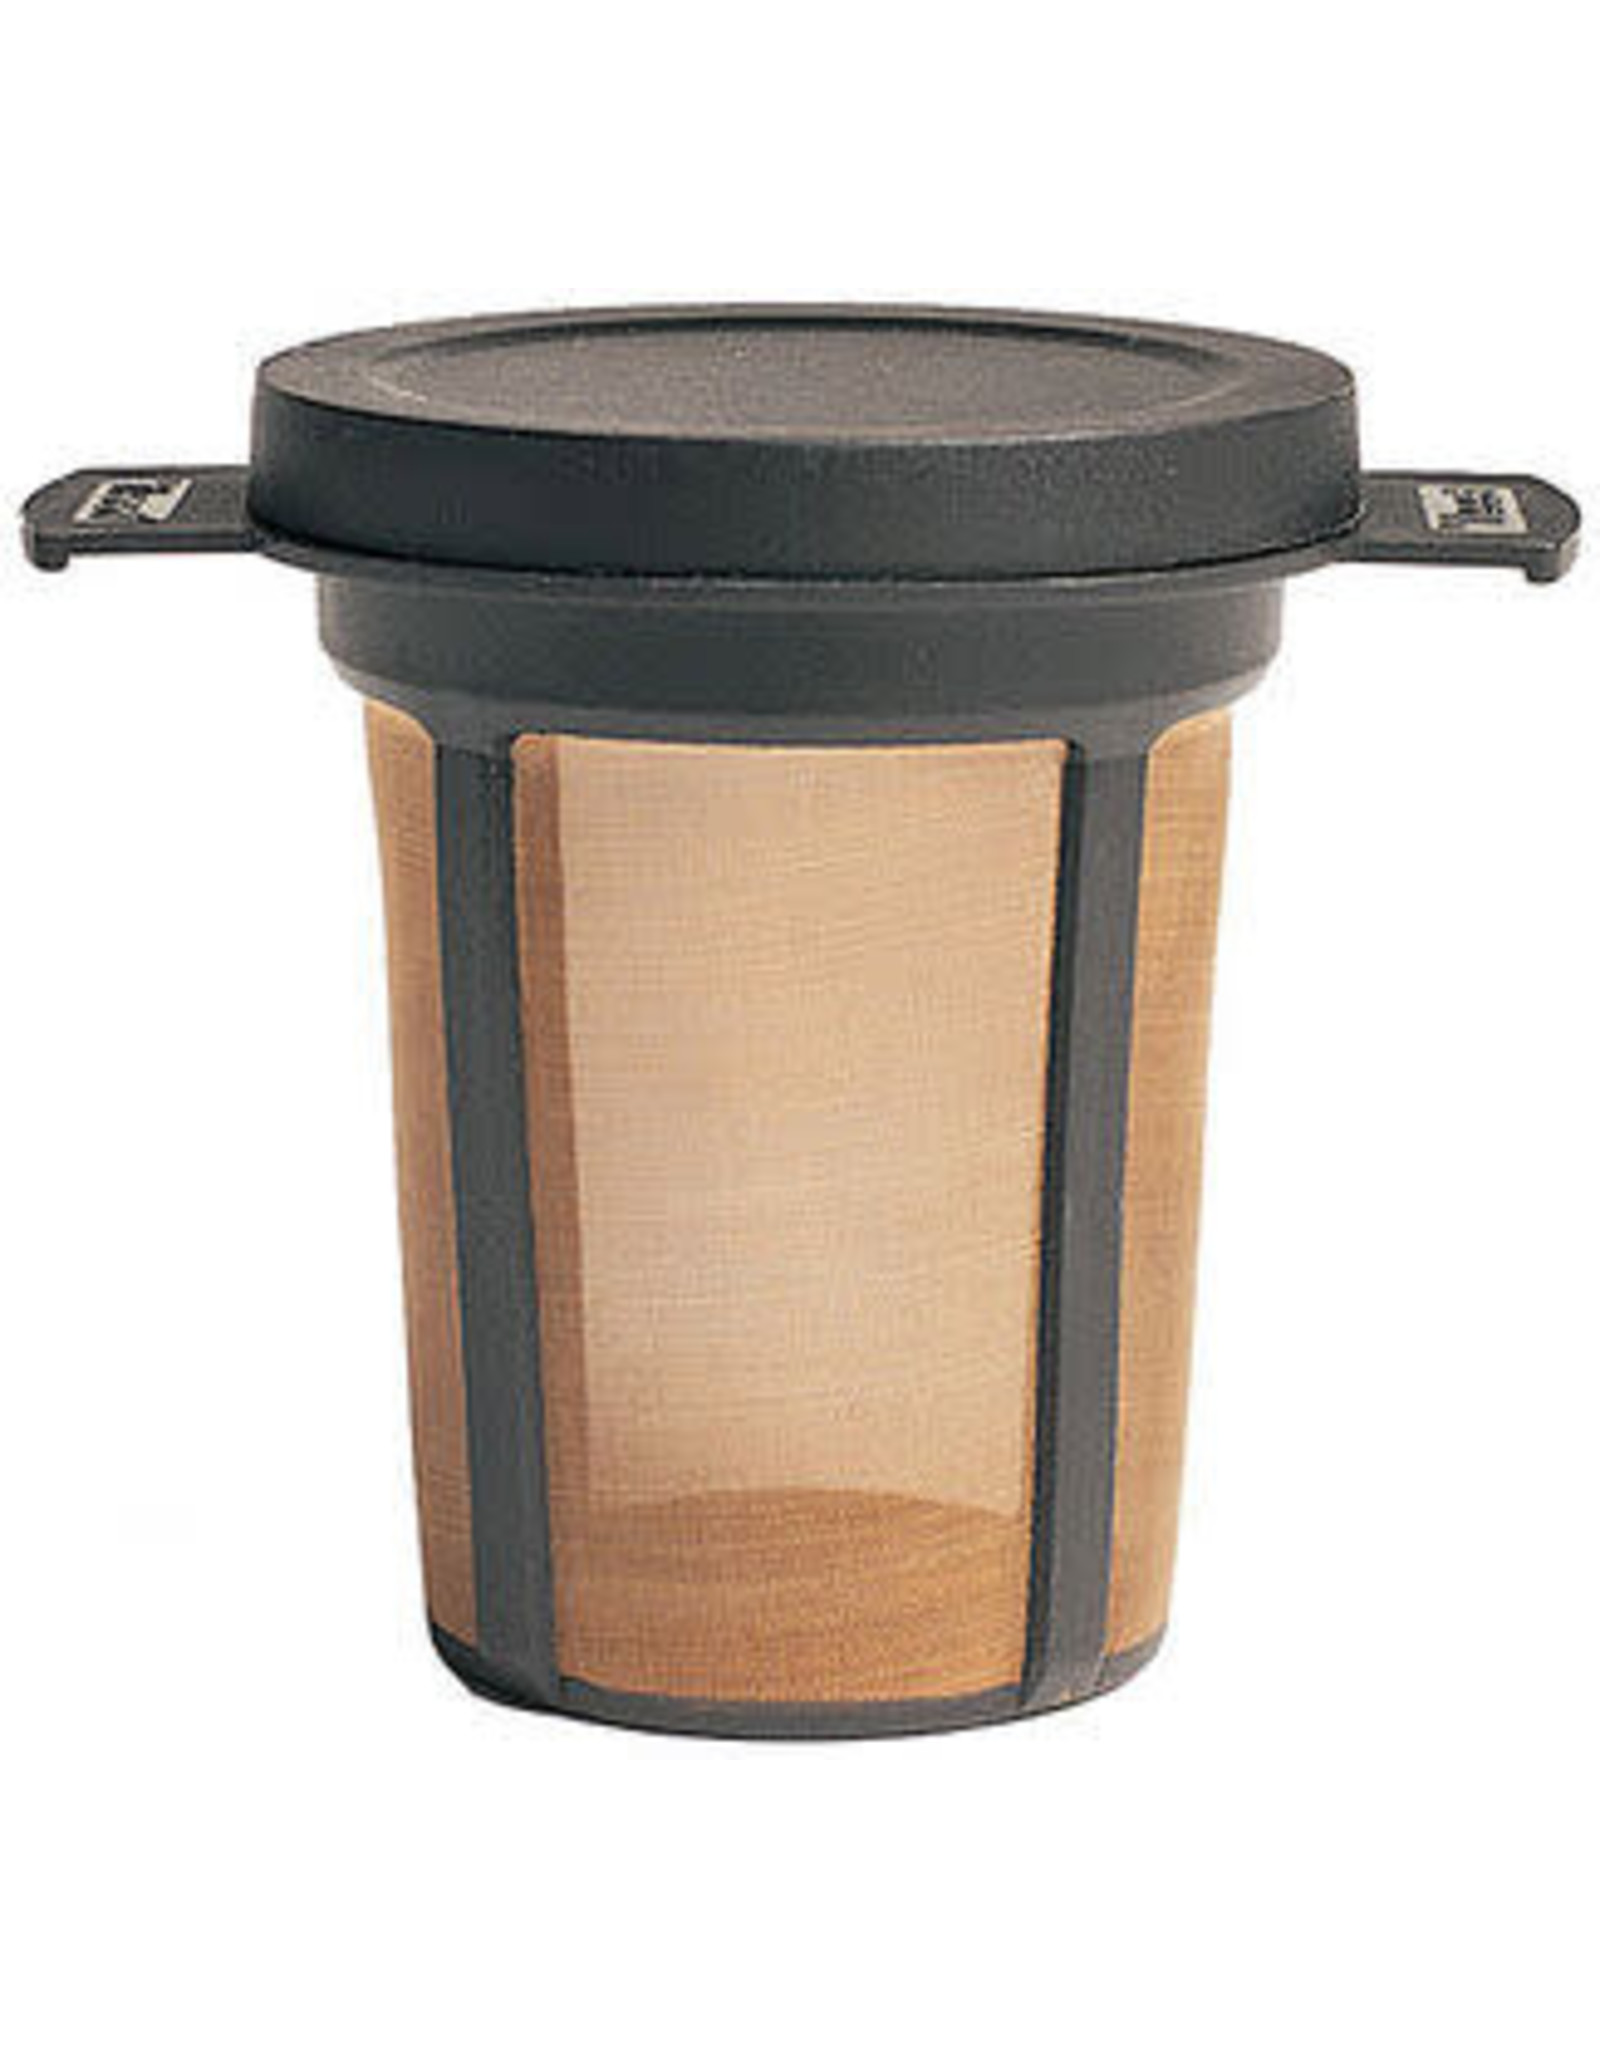 MSR Mugmate Coffee/Tea Filter